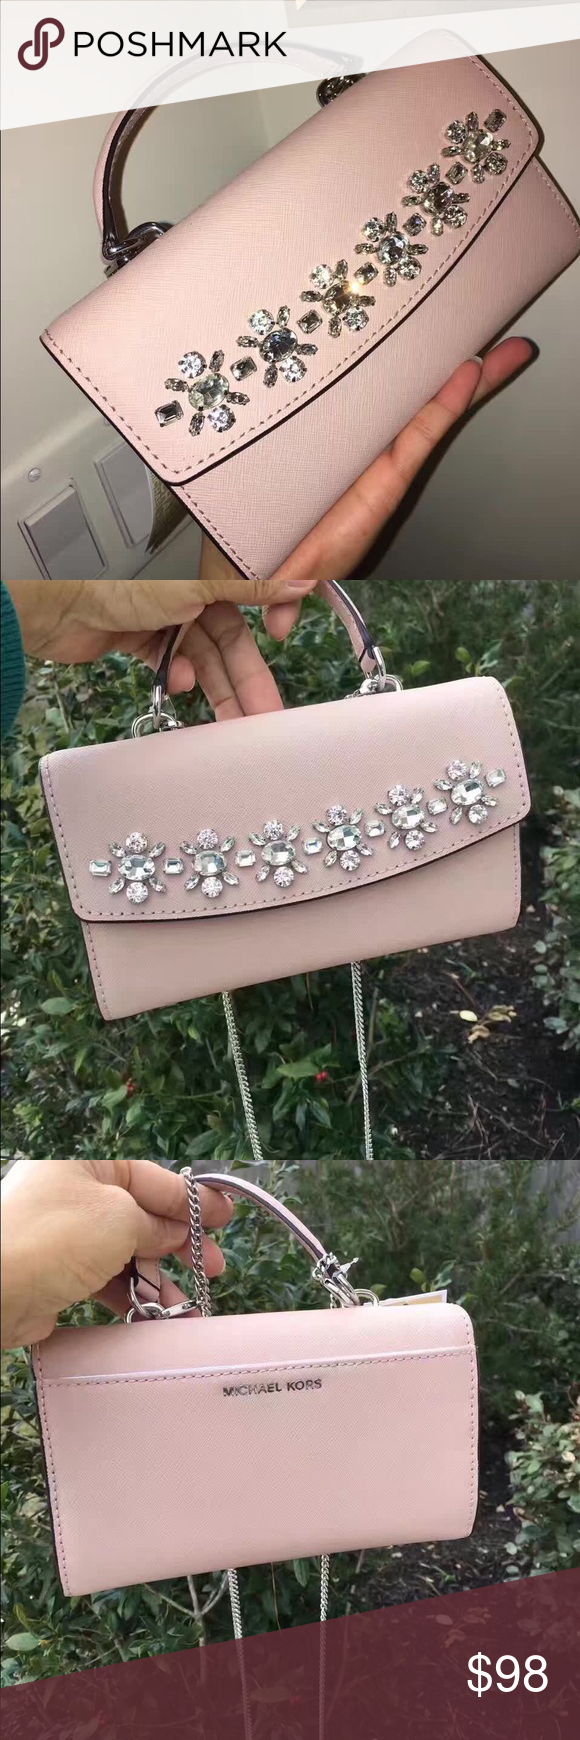 6fe84ebcf354 MK Ava Jewel Large Phone Crossbody each for  98 This saffiano leather  crossbody bag from MICHAEL